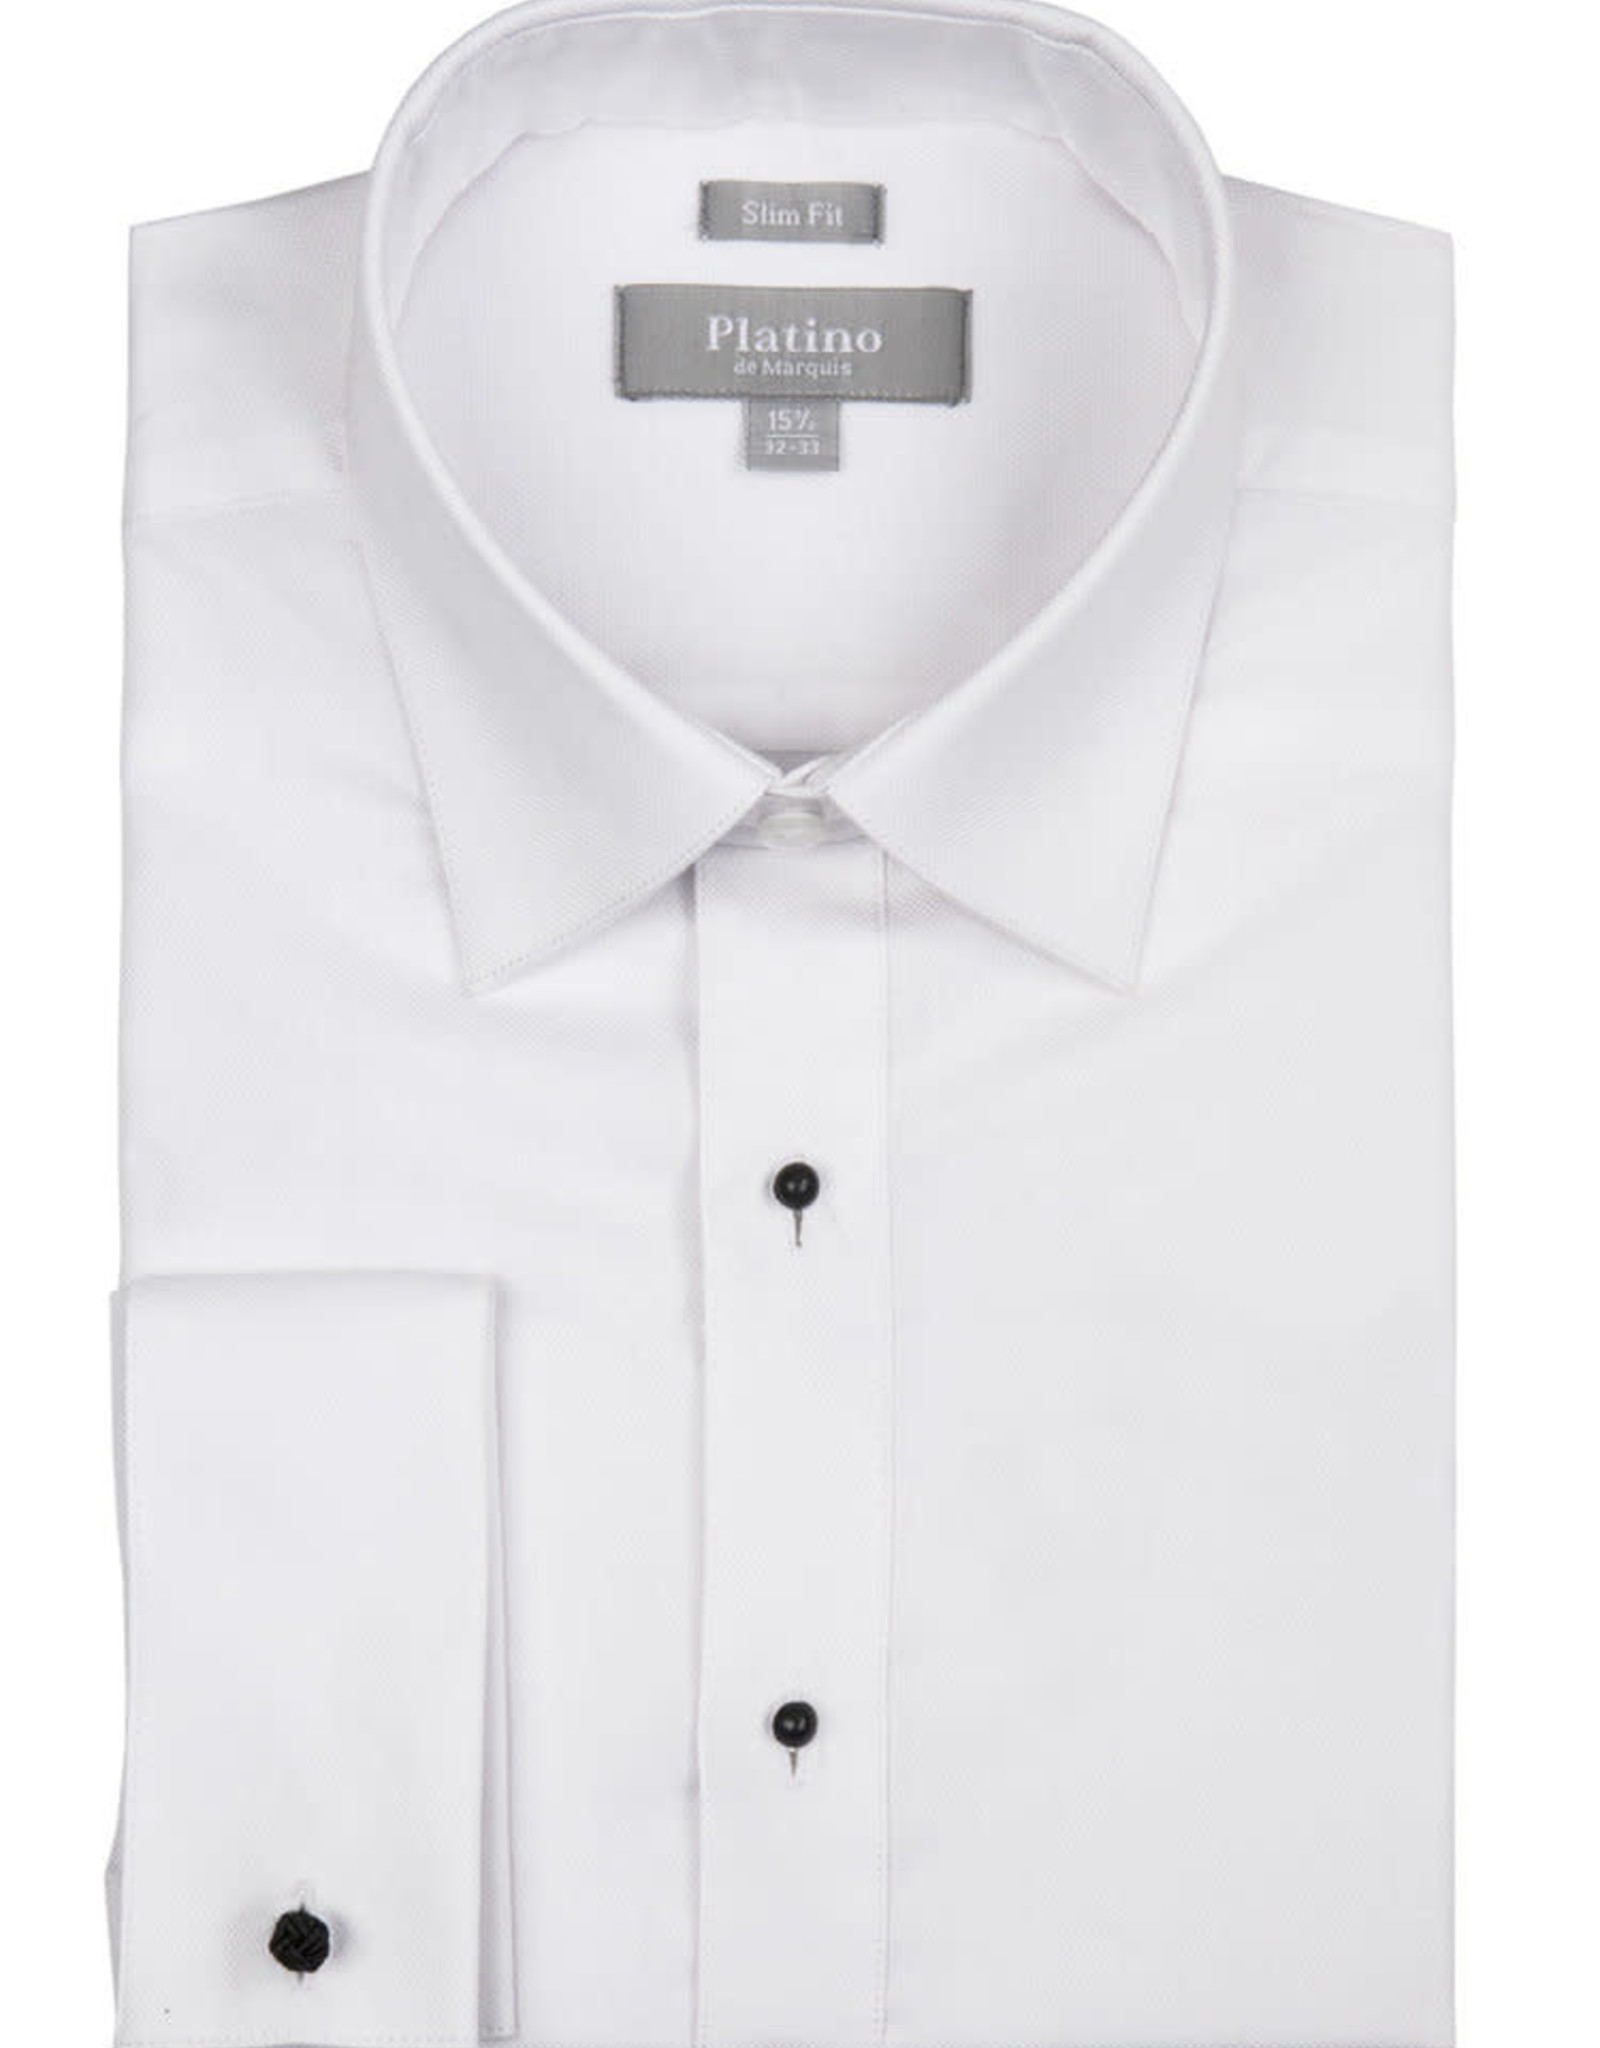 Marquis Tuxedo Slim Fit Dress Shirt Platino 100% Cotton PIQUE White